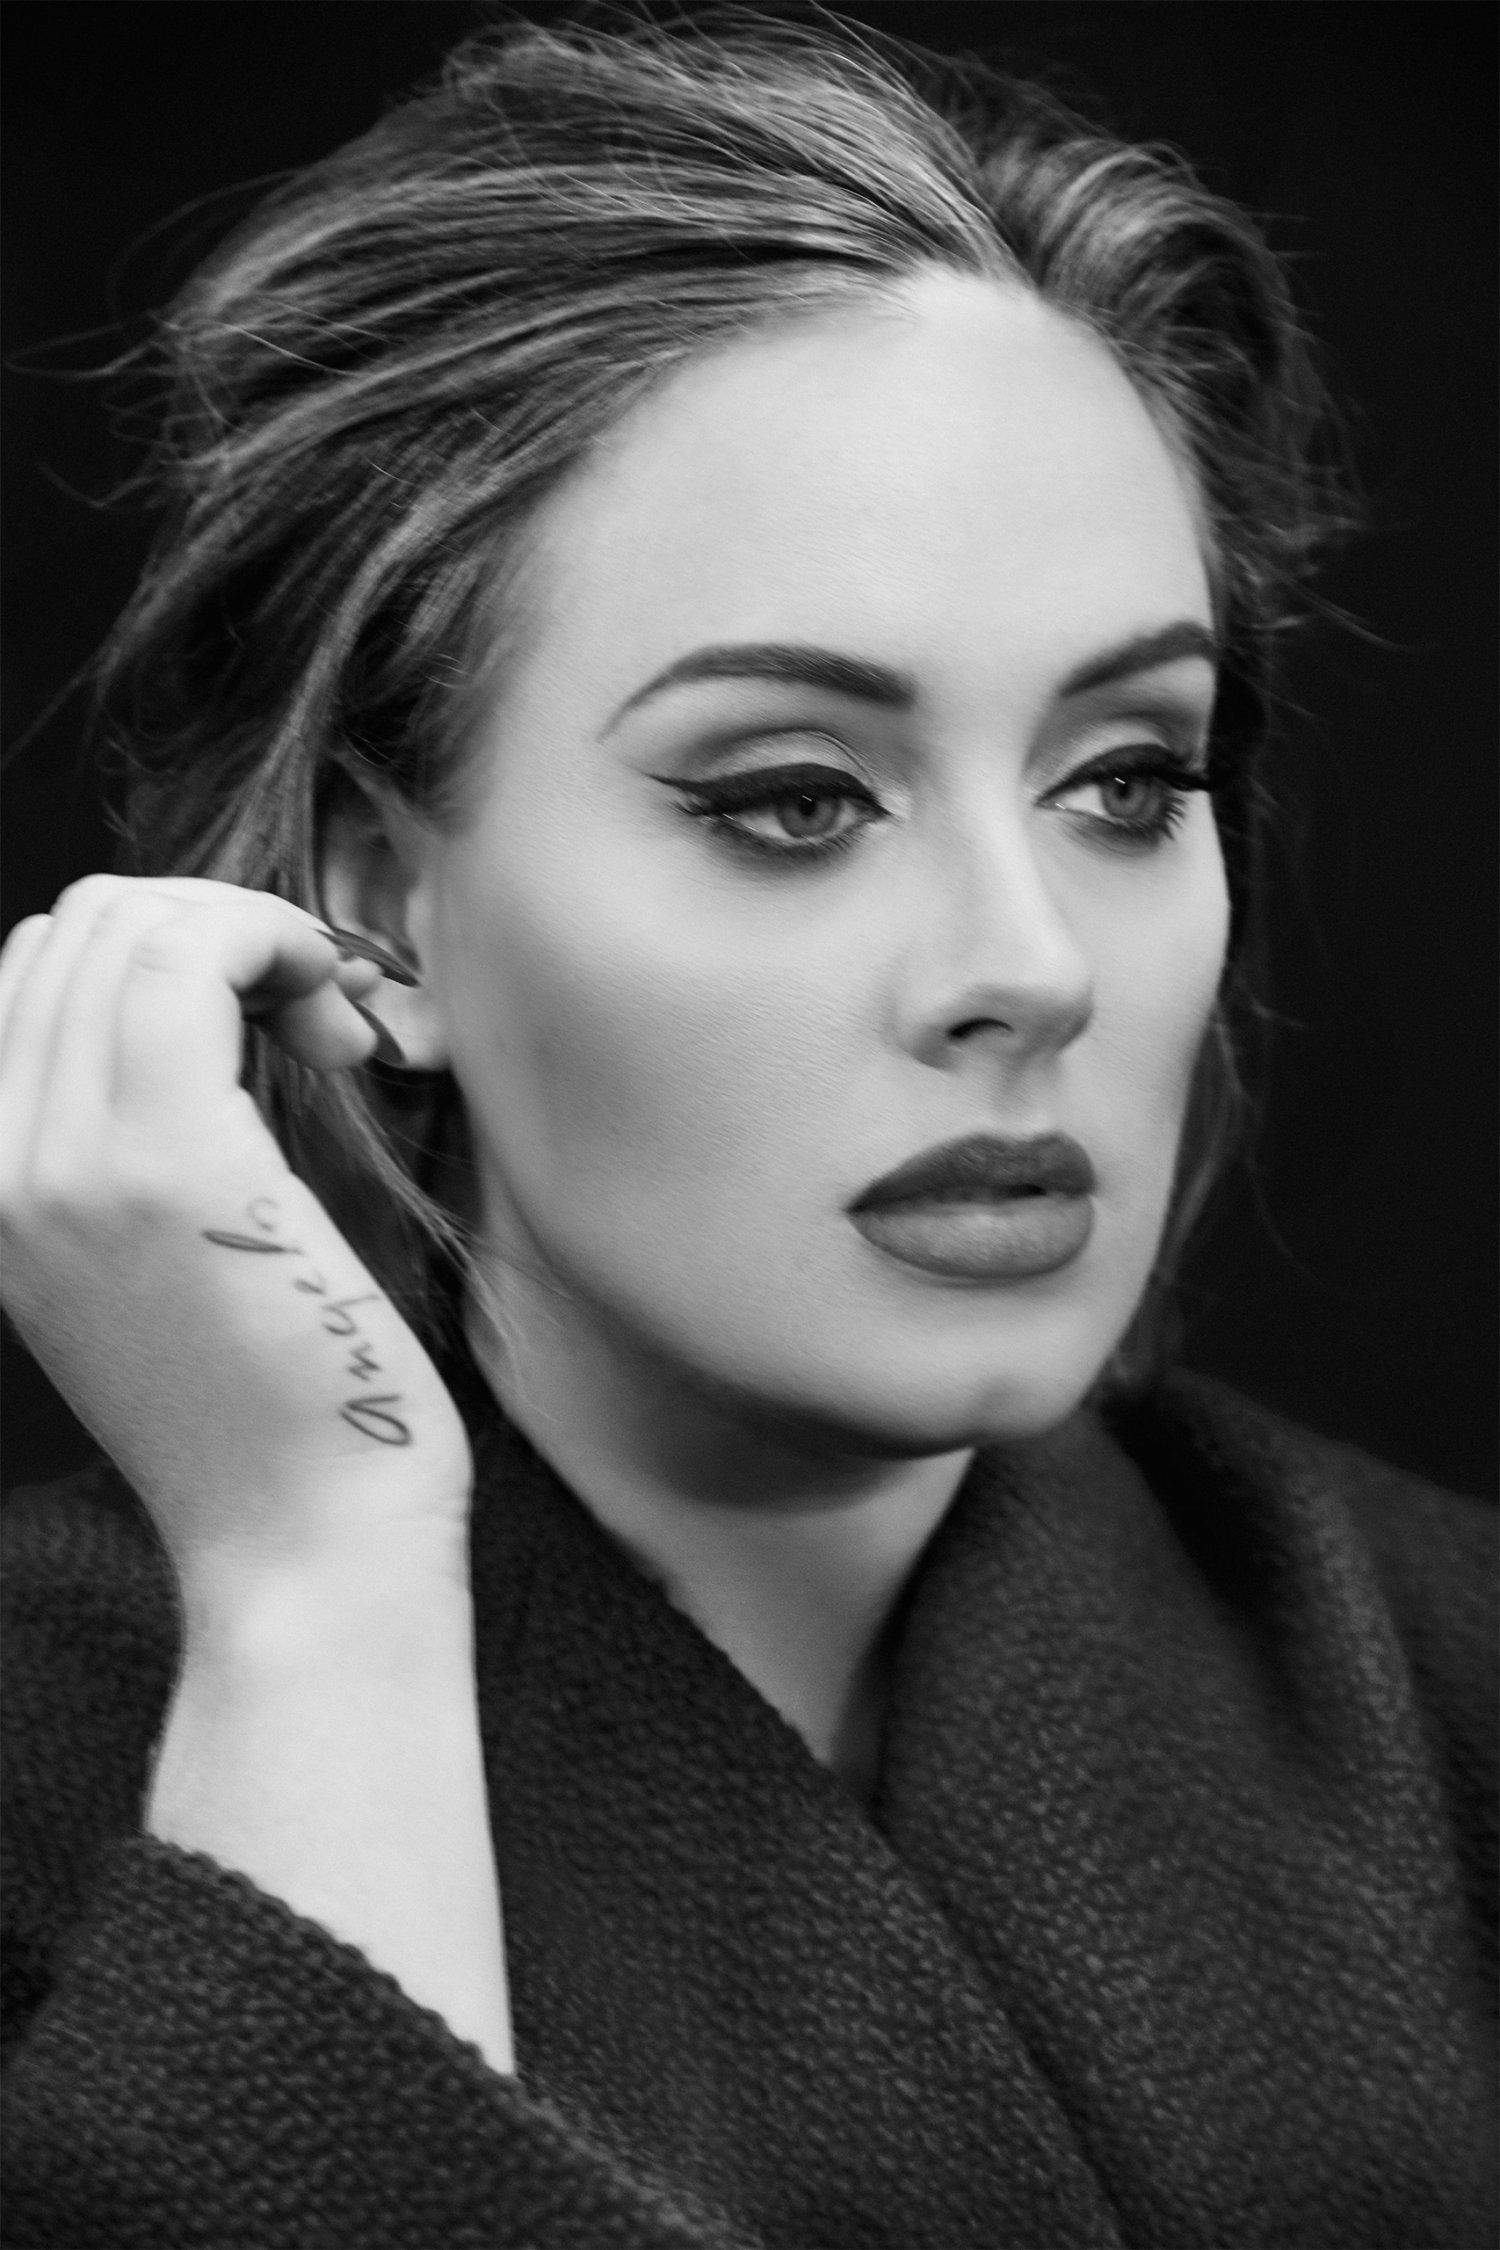 Adele High Quality Wallpapers For Iphone